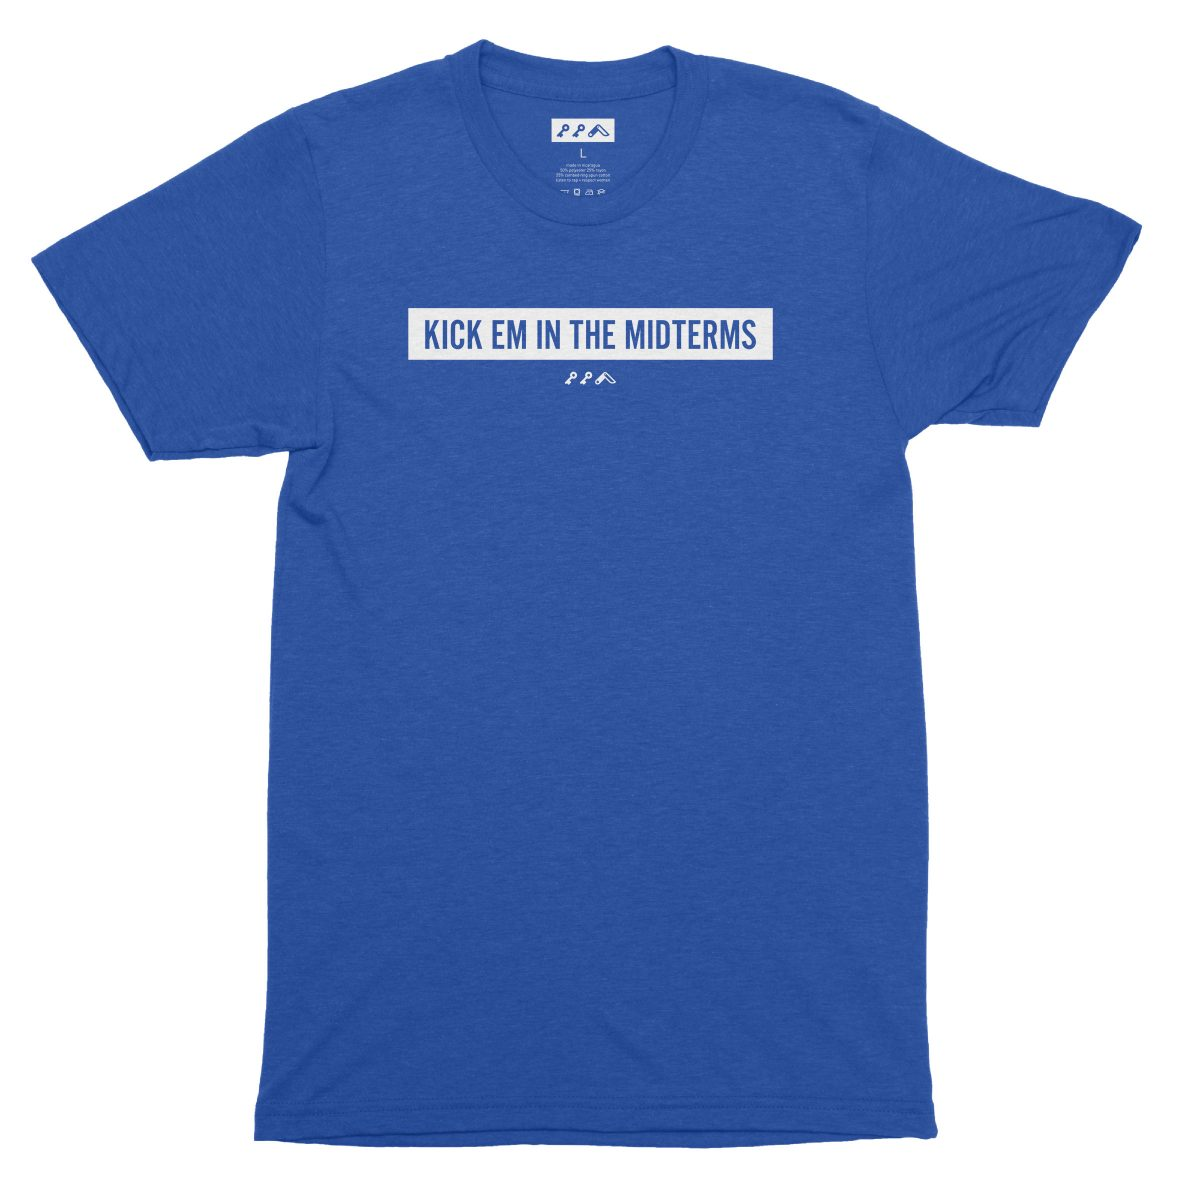 """""""KICK EM IN THE MIDTERMS"""" funny political t-shirt in royal blue"""